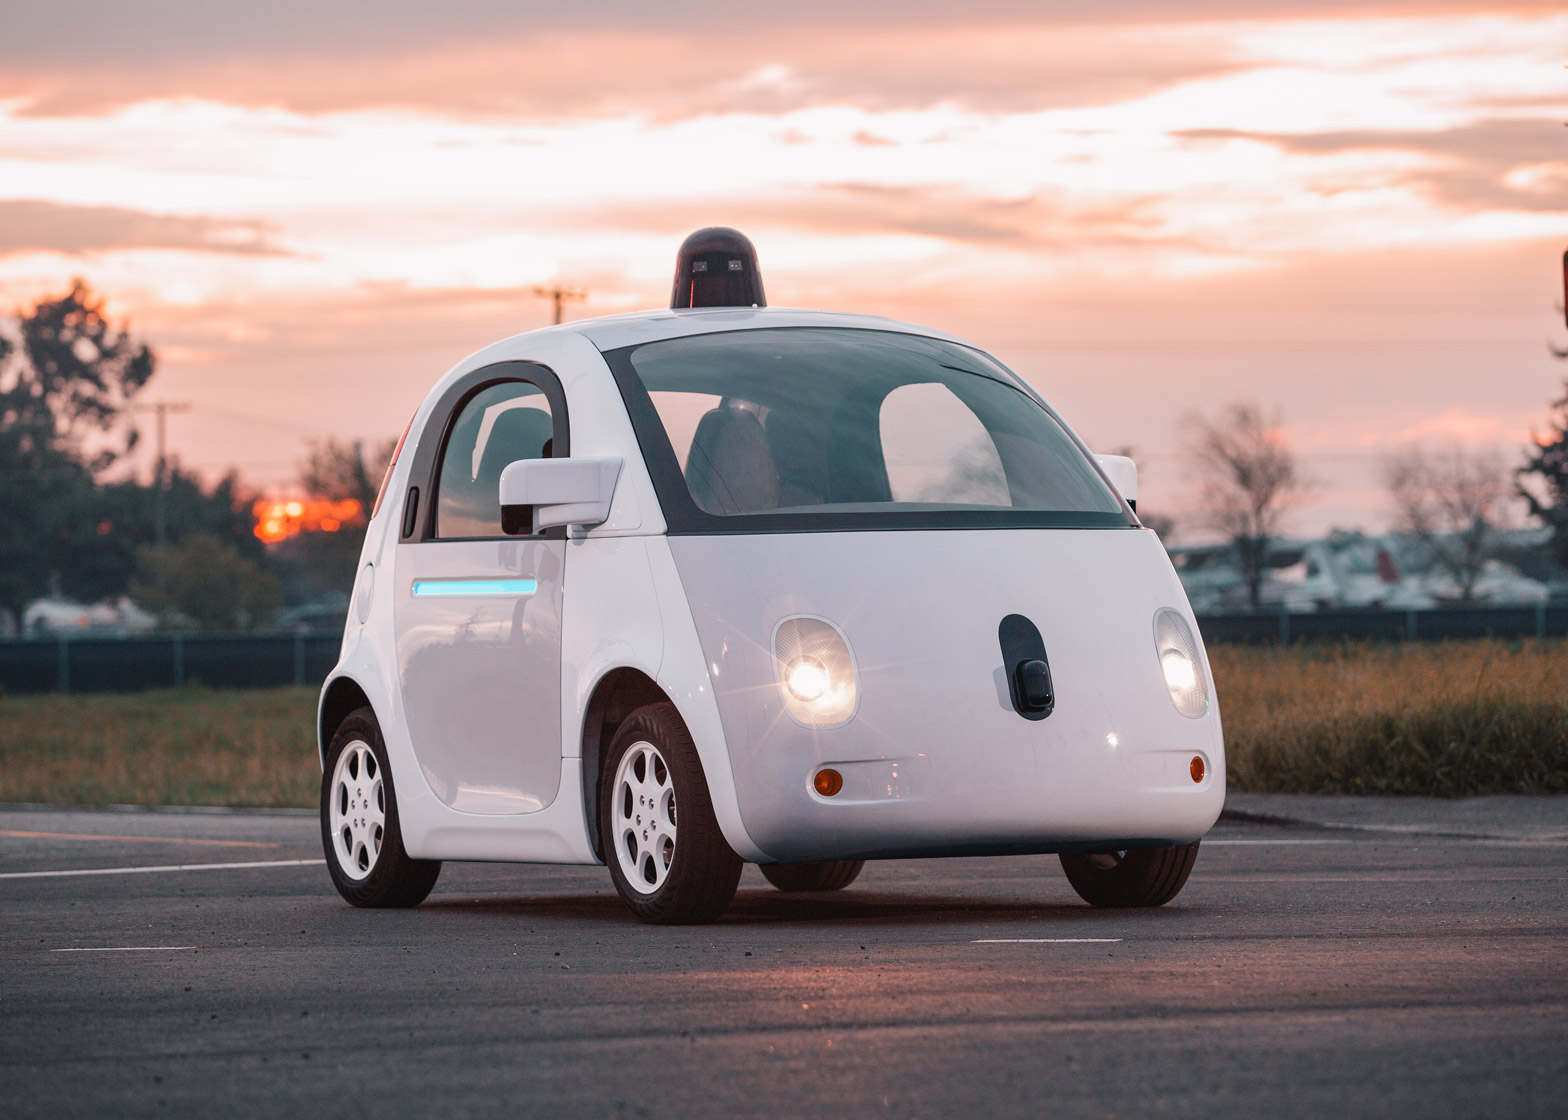 Uber Releases Their Self-Driving Car